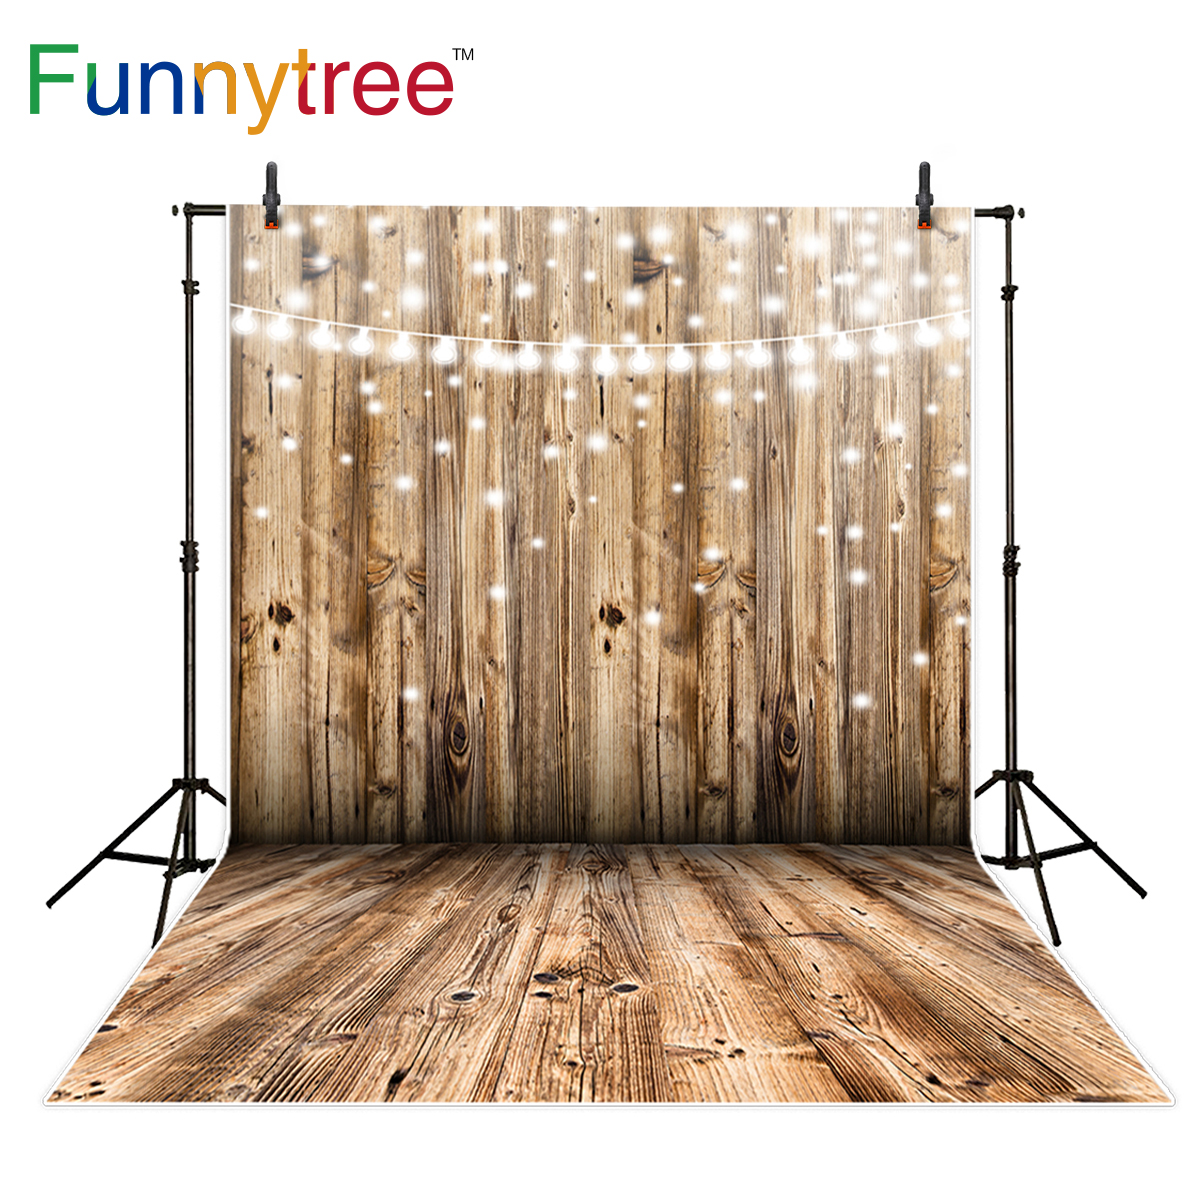 Funnytree wedding photography backdrop wood wall glitter bokeh shiny birthday background photo studio photobooth photo prop allenjoy background photography pink birthday table flower cake wood backdrop photocall photobooth photo studio